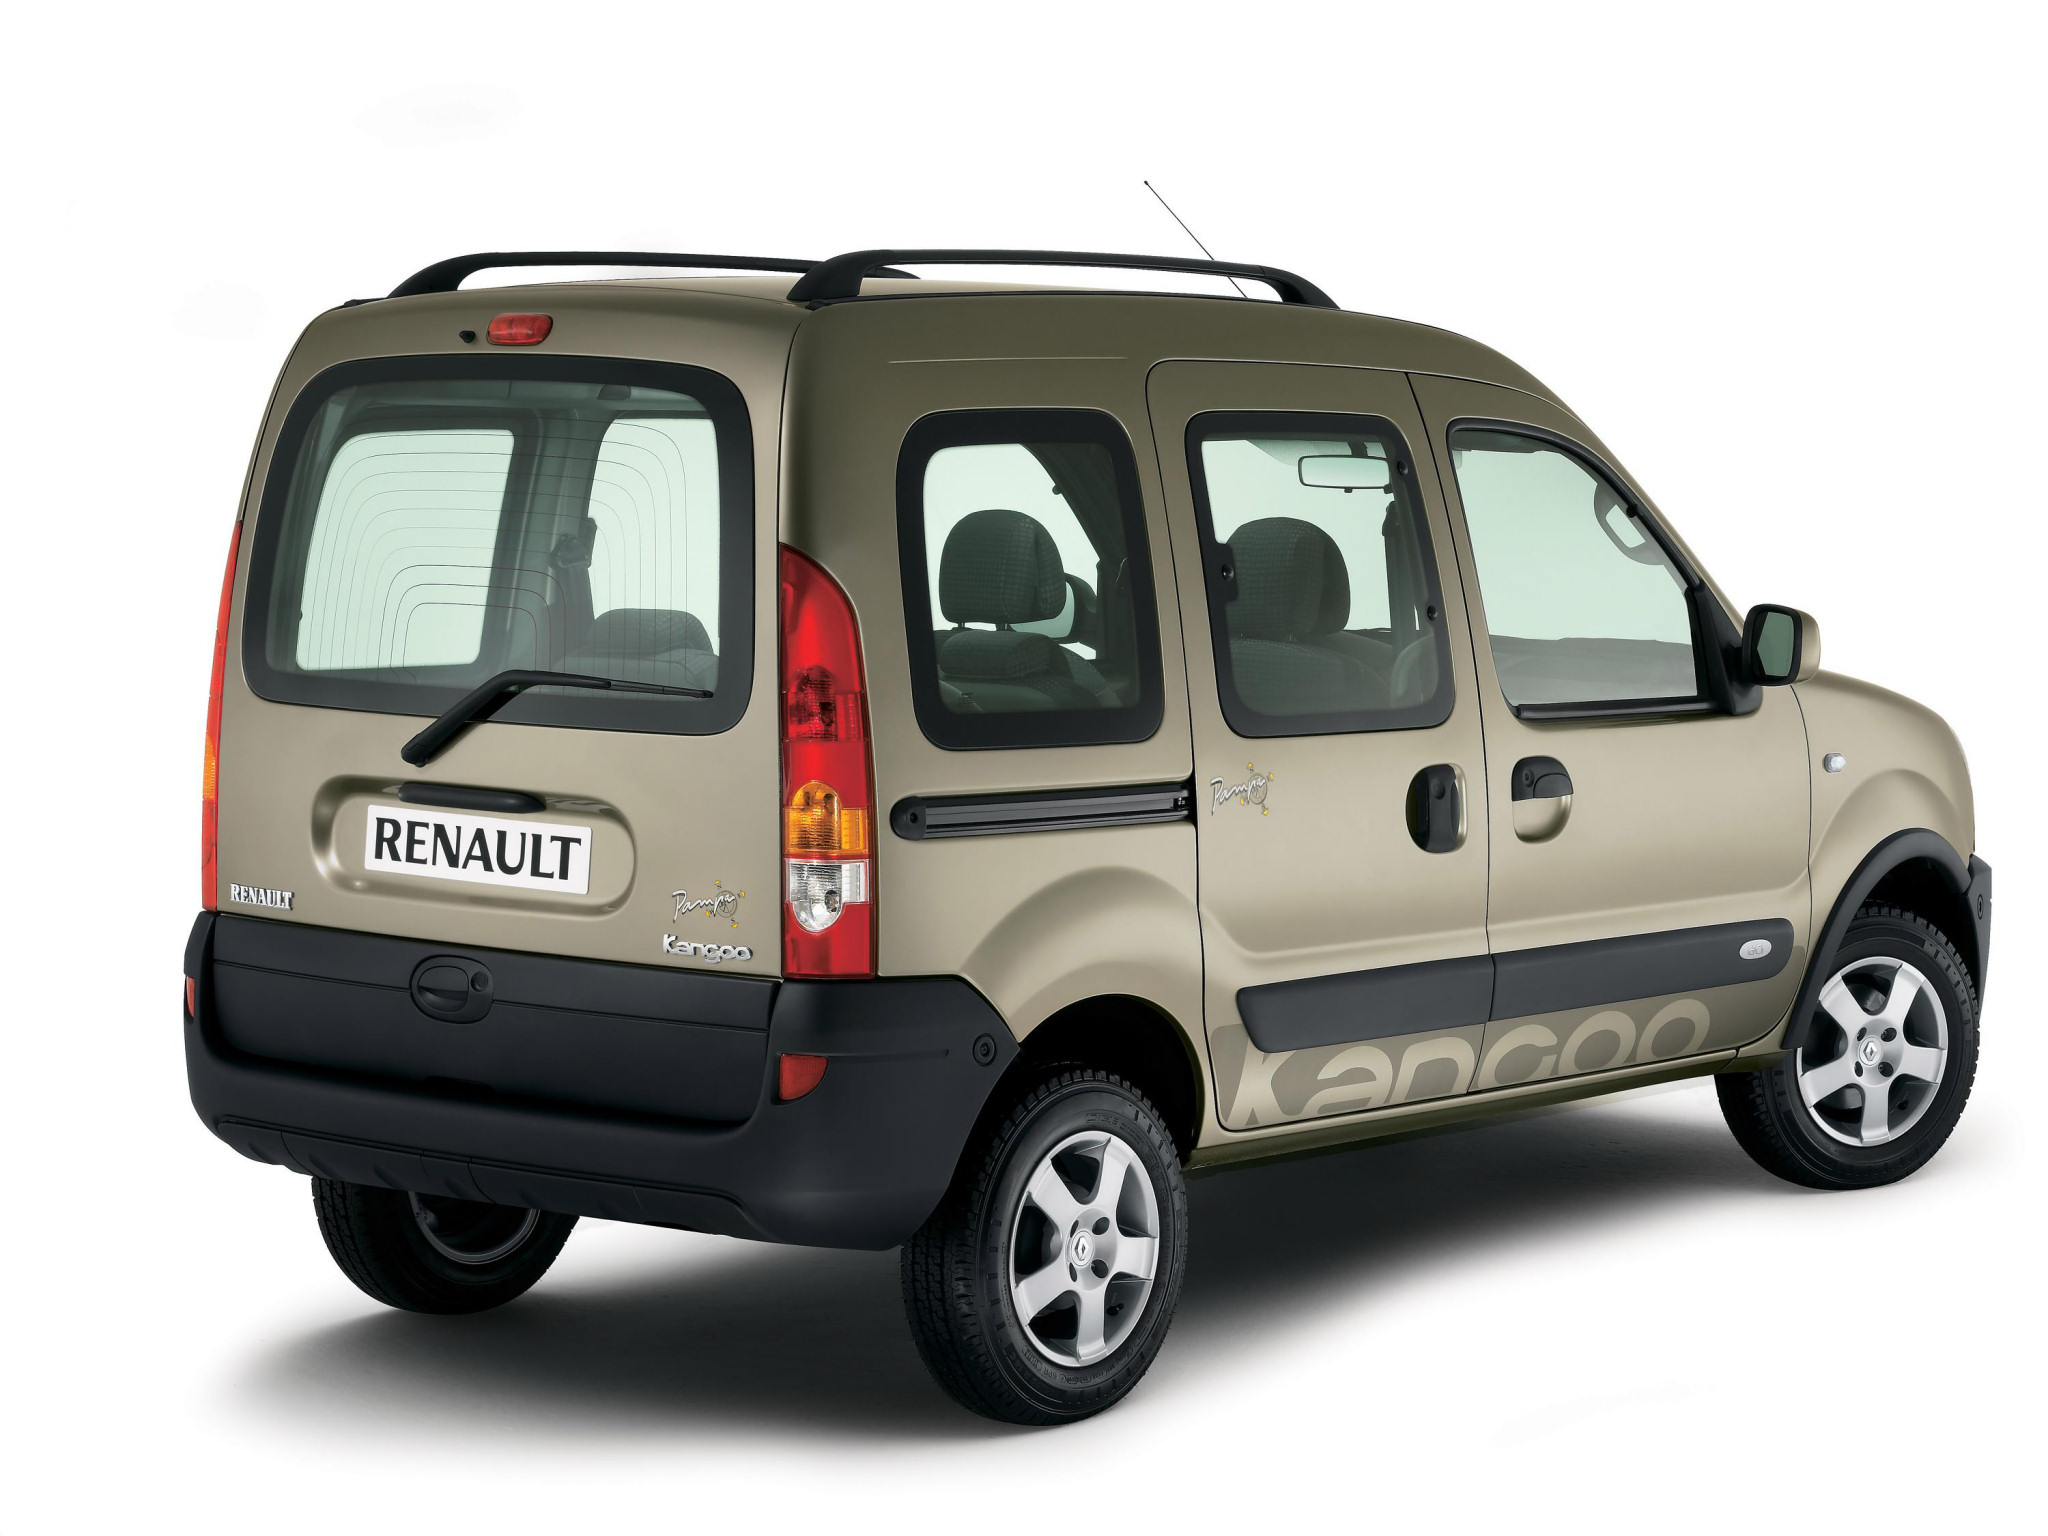 renault kangoo cross 2006 renault kangoo cross 2006 photo 02 car in pictures car photo gallery. Black Bedroom Furniture Sets. Home Design Ideas